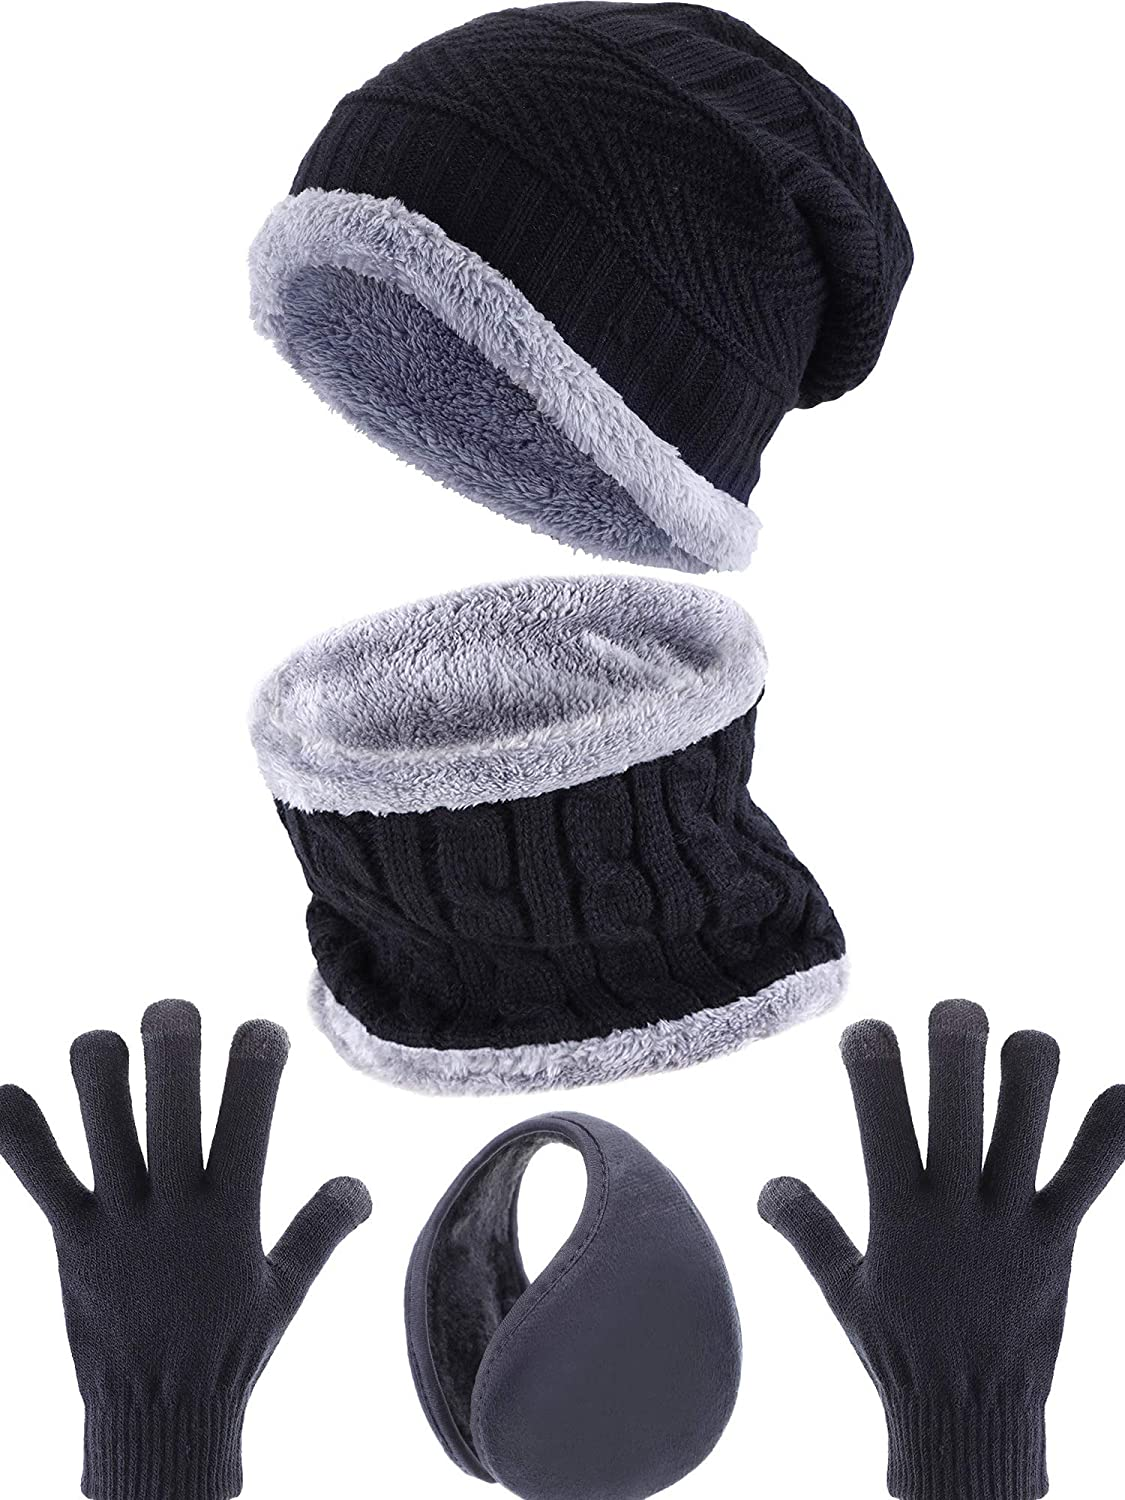 f34b035bb82 Tatuo 4 Pieces Ski Warm Set includes Winter Hat Scarf Warmer Gloves Winter  Outdoor Earmuffs for Adults Kids (Set 1)  Amazon.ca  Clothing   Accessories